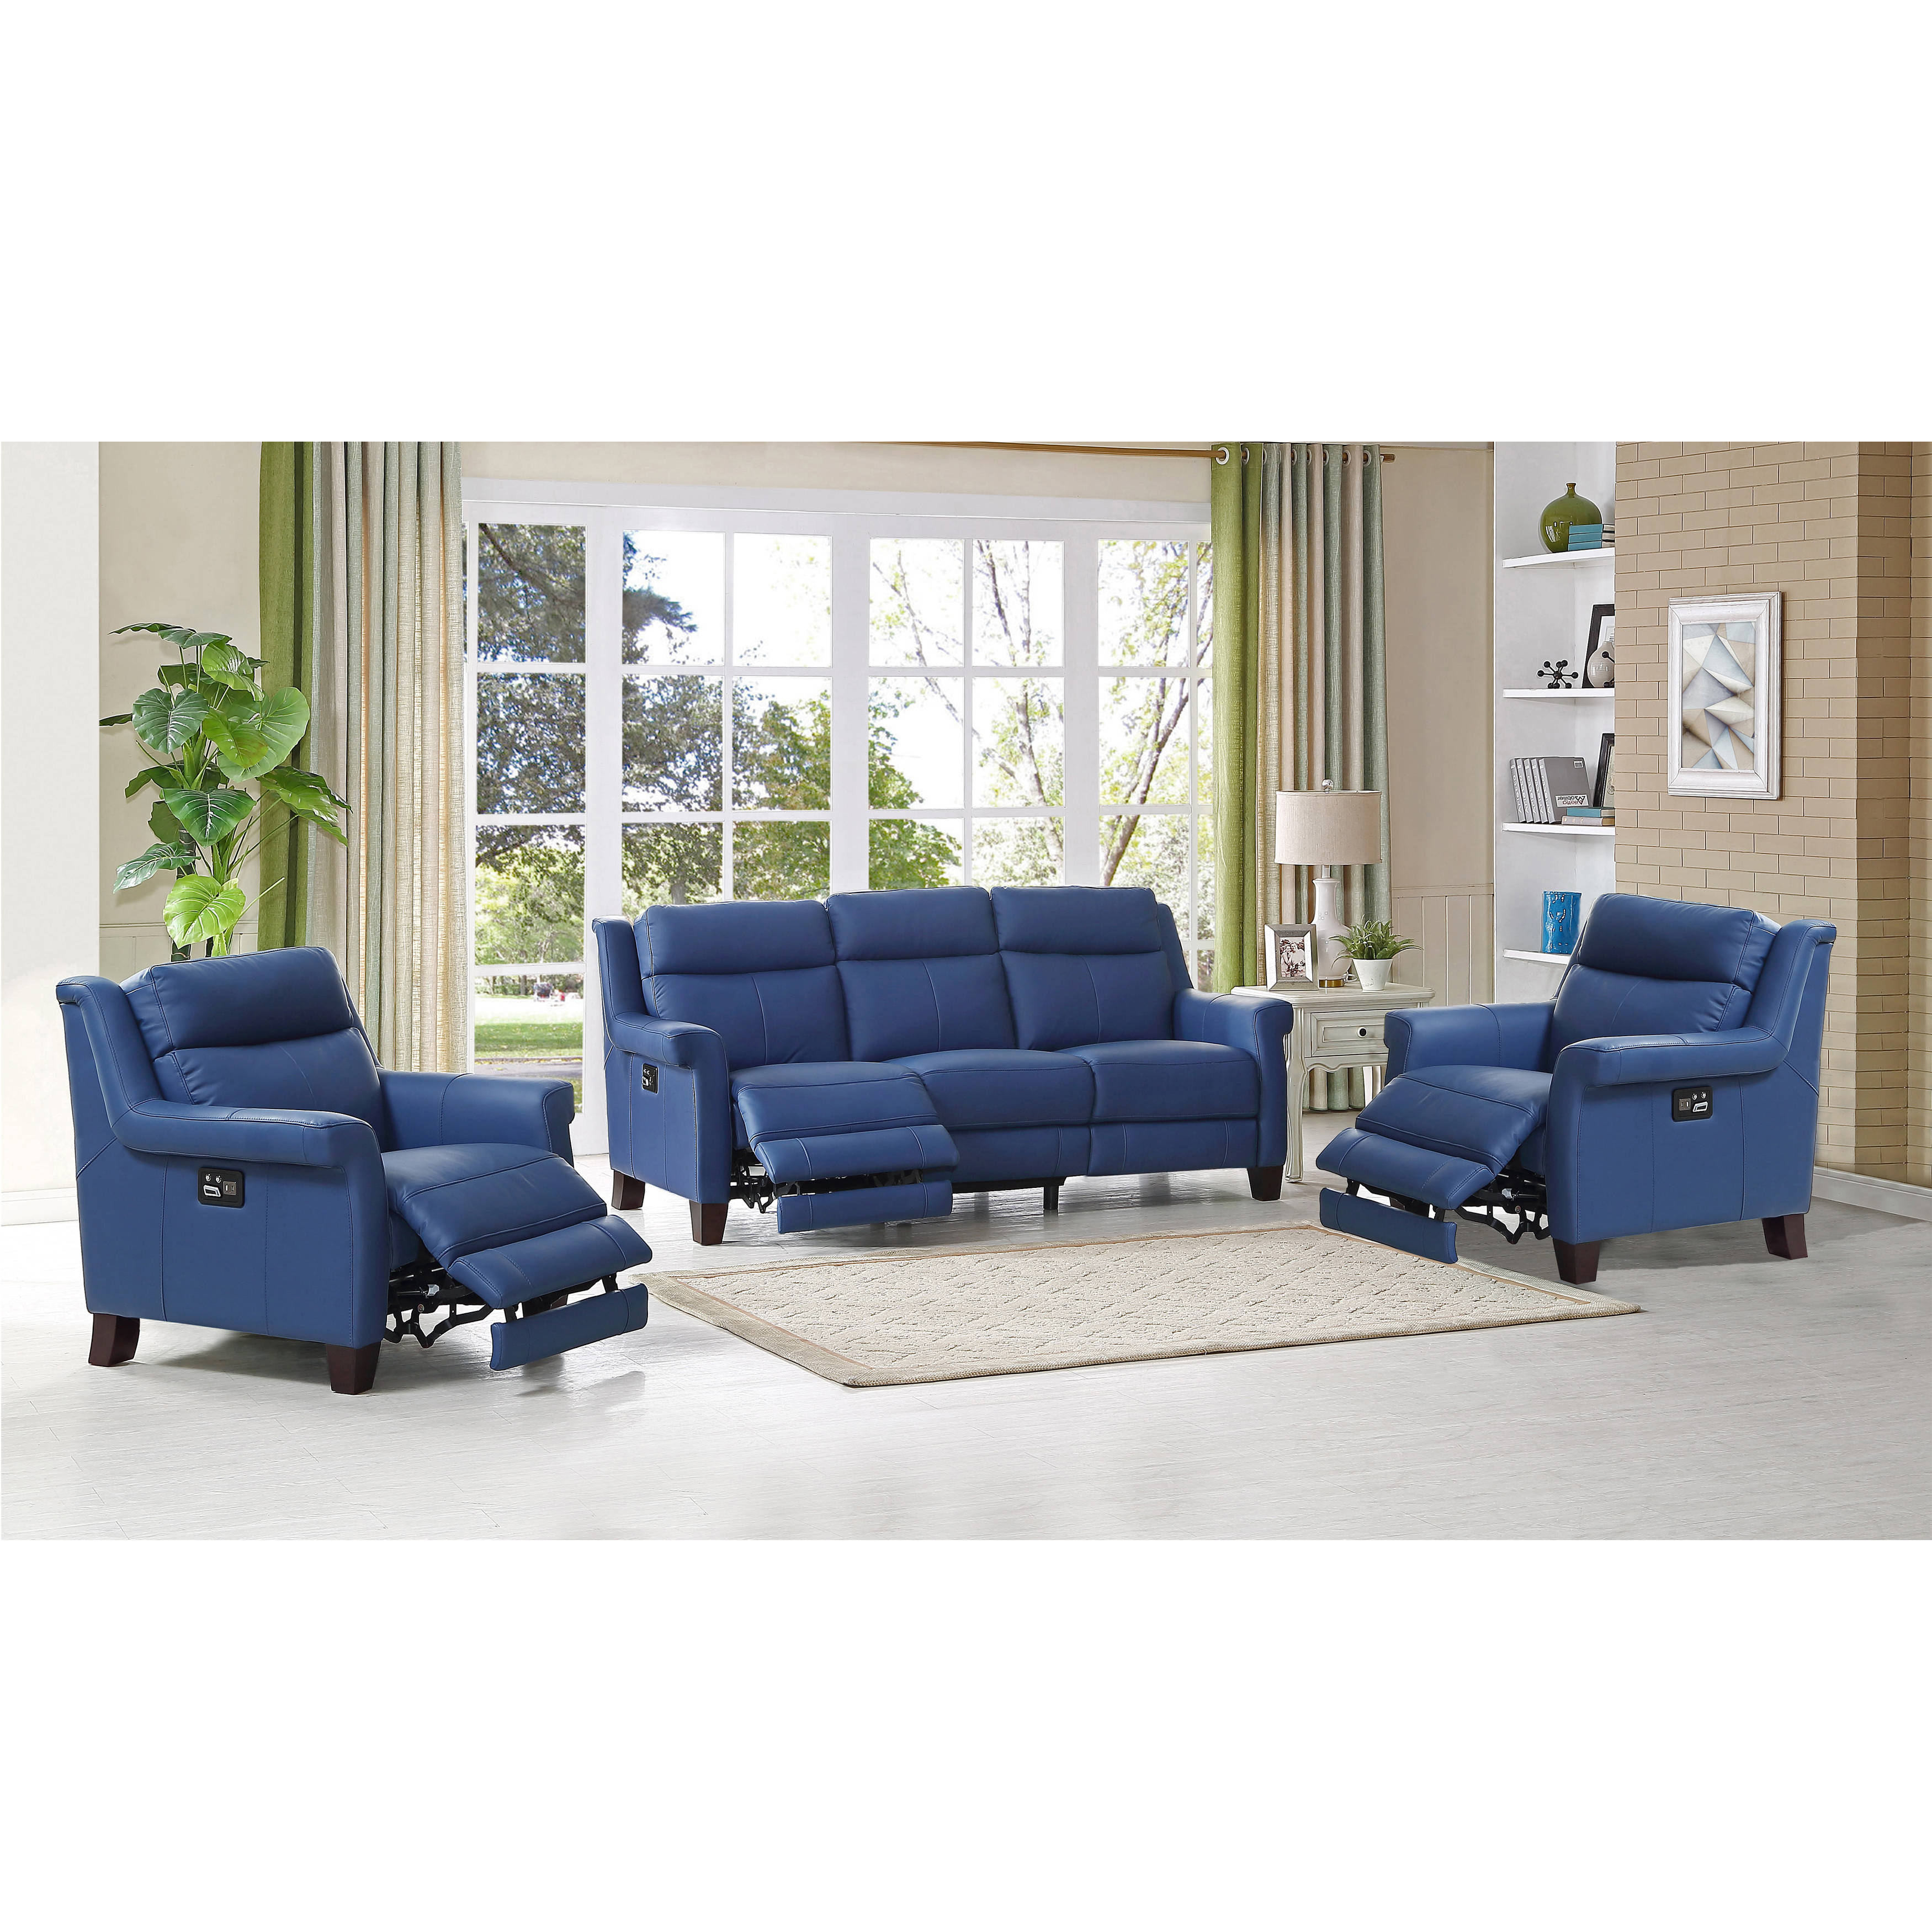 Amax Leather Dolce Blue Reclining Sofa And Two Recliners Set The Cly Home